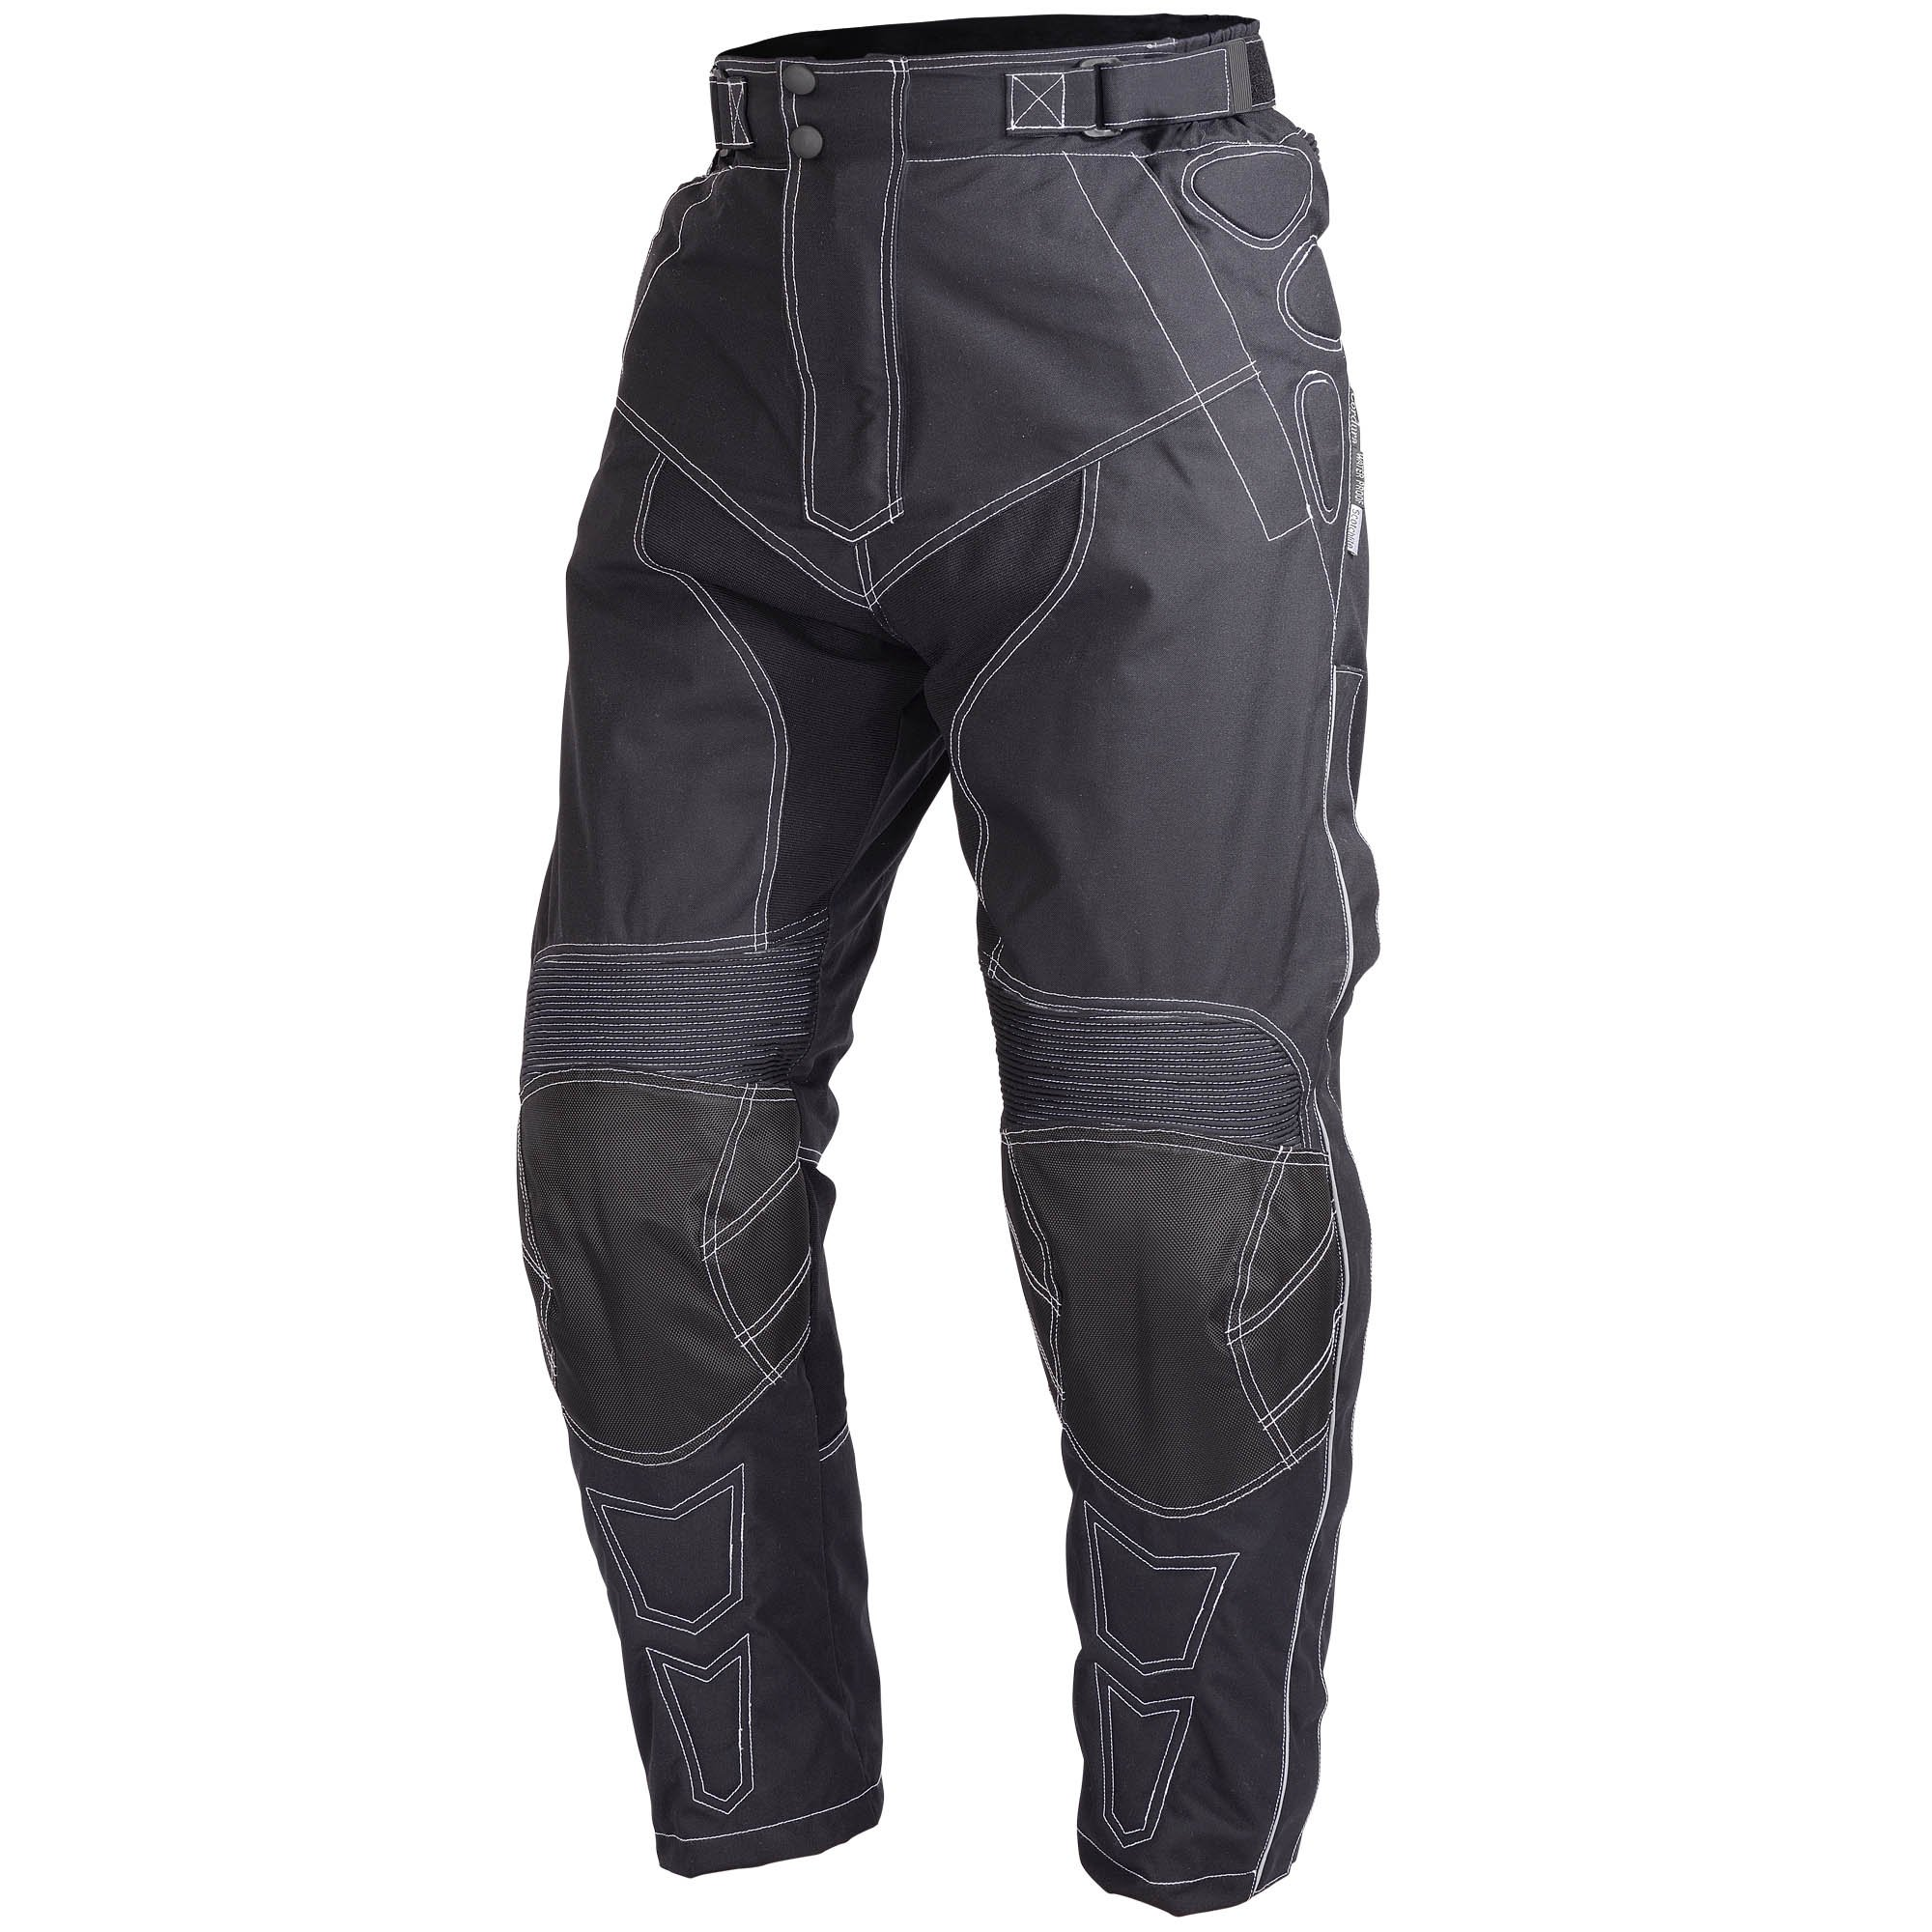 Motorcycle Riding Pants Black with Removable CE Armor PT5 (L-Short)